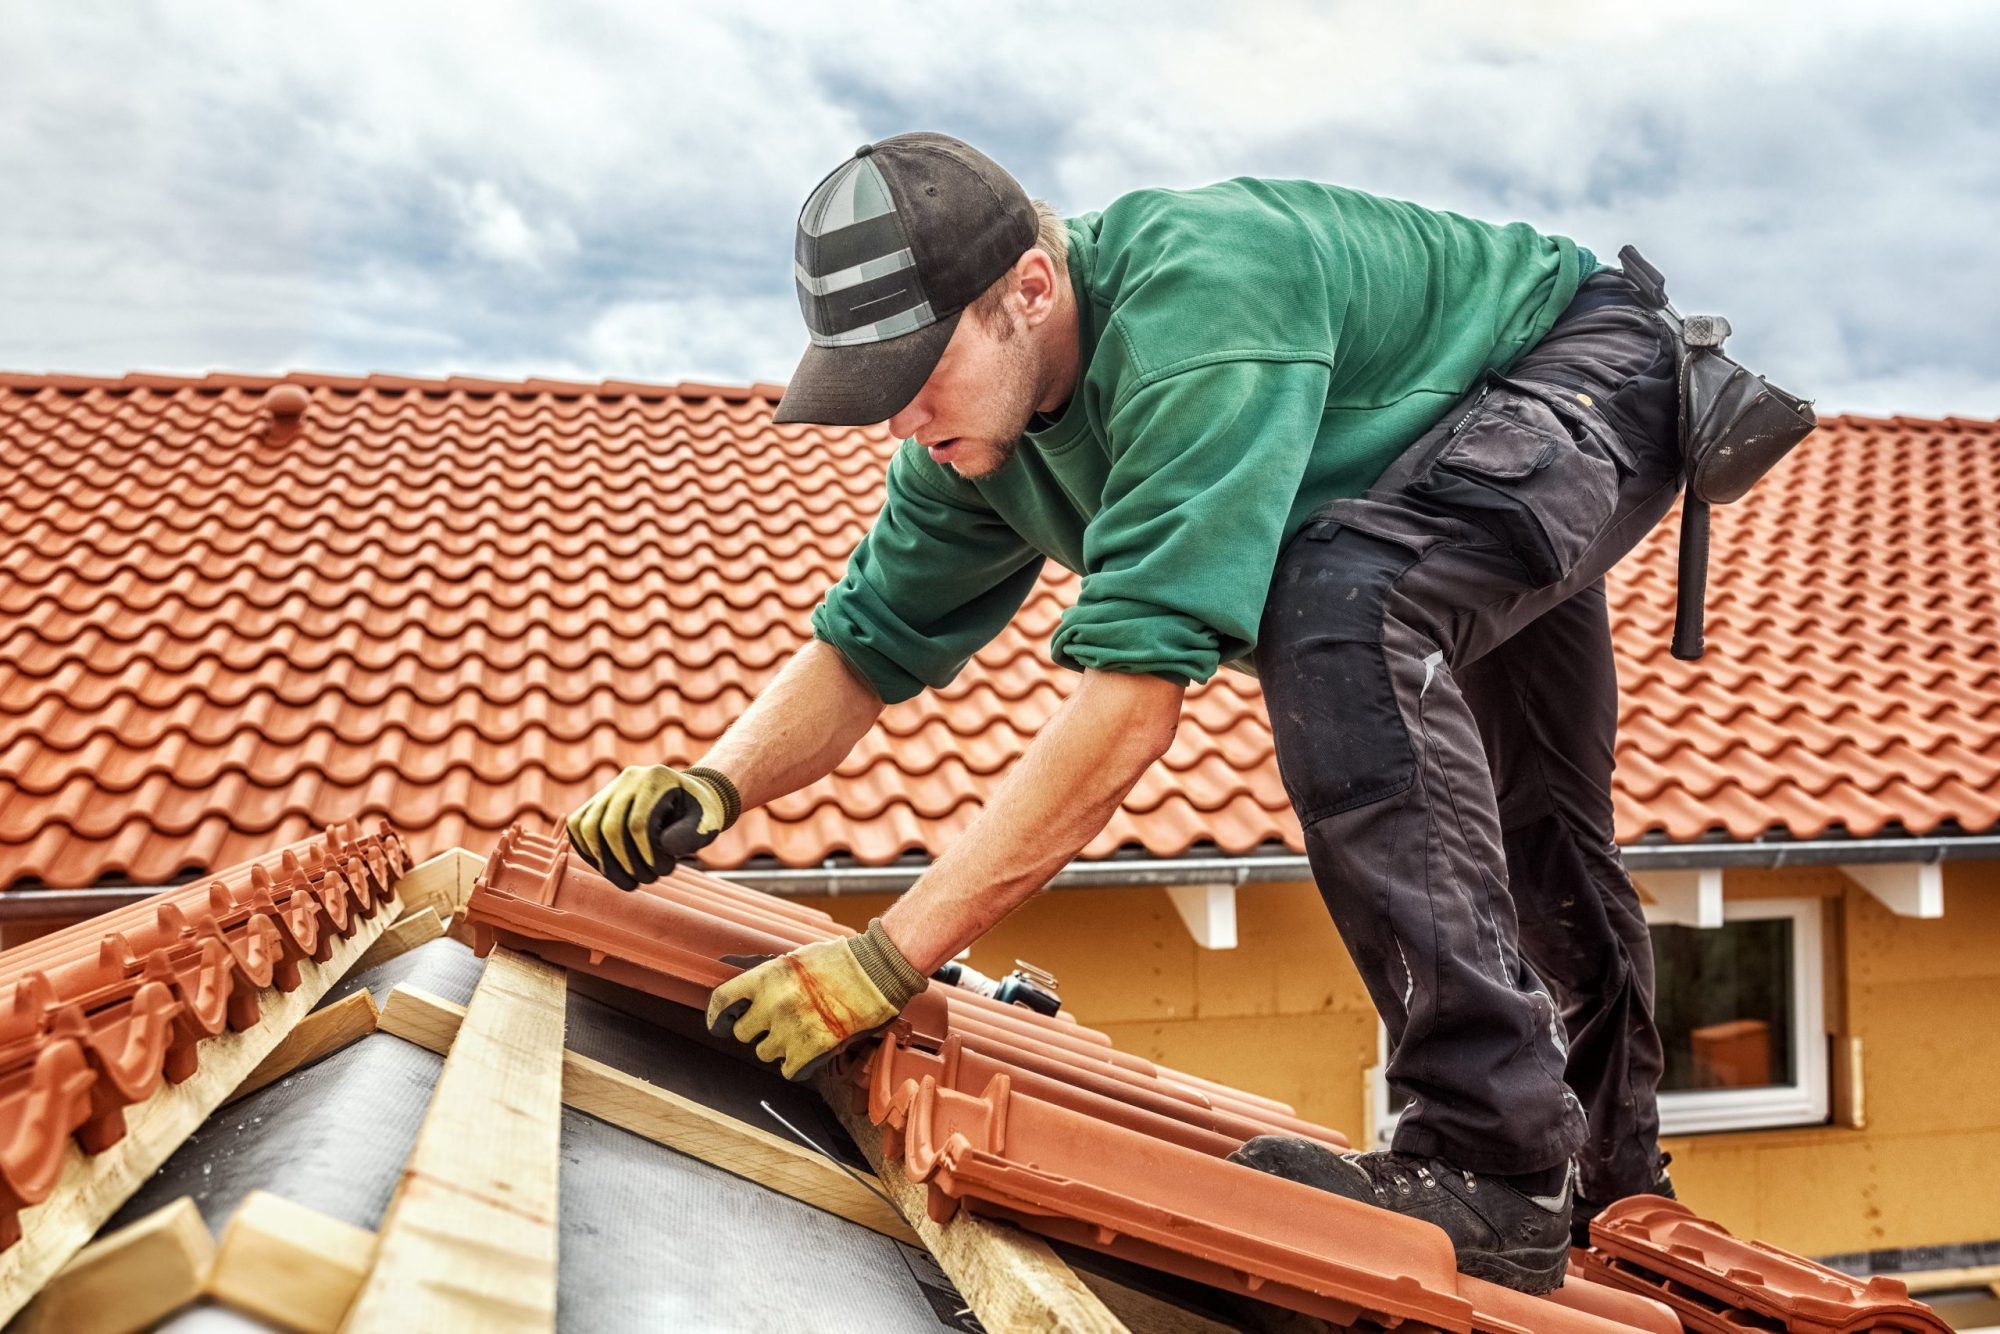 tile roof st louis missouri clay tile spanish tiles roofing tiles tiling roofing contractor roofer excellent st louis ladue town and country chesterfield missouri metro east illinois edwardsville bethalto excellent service